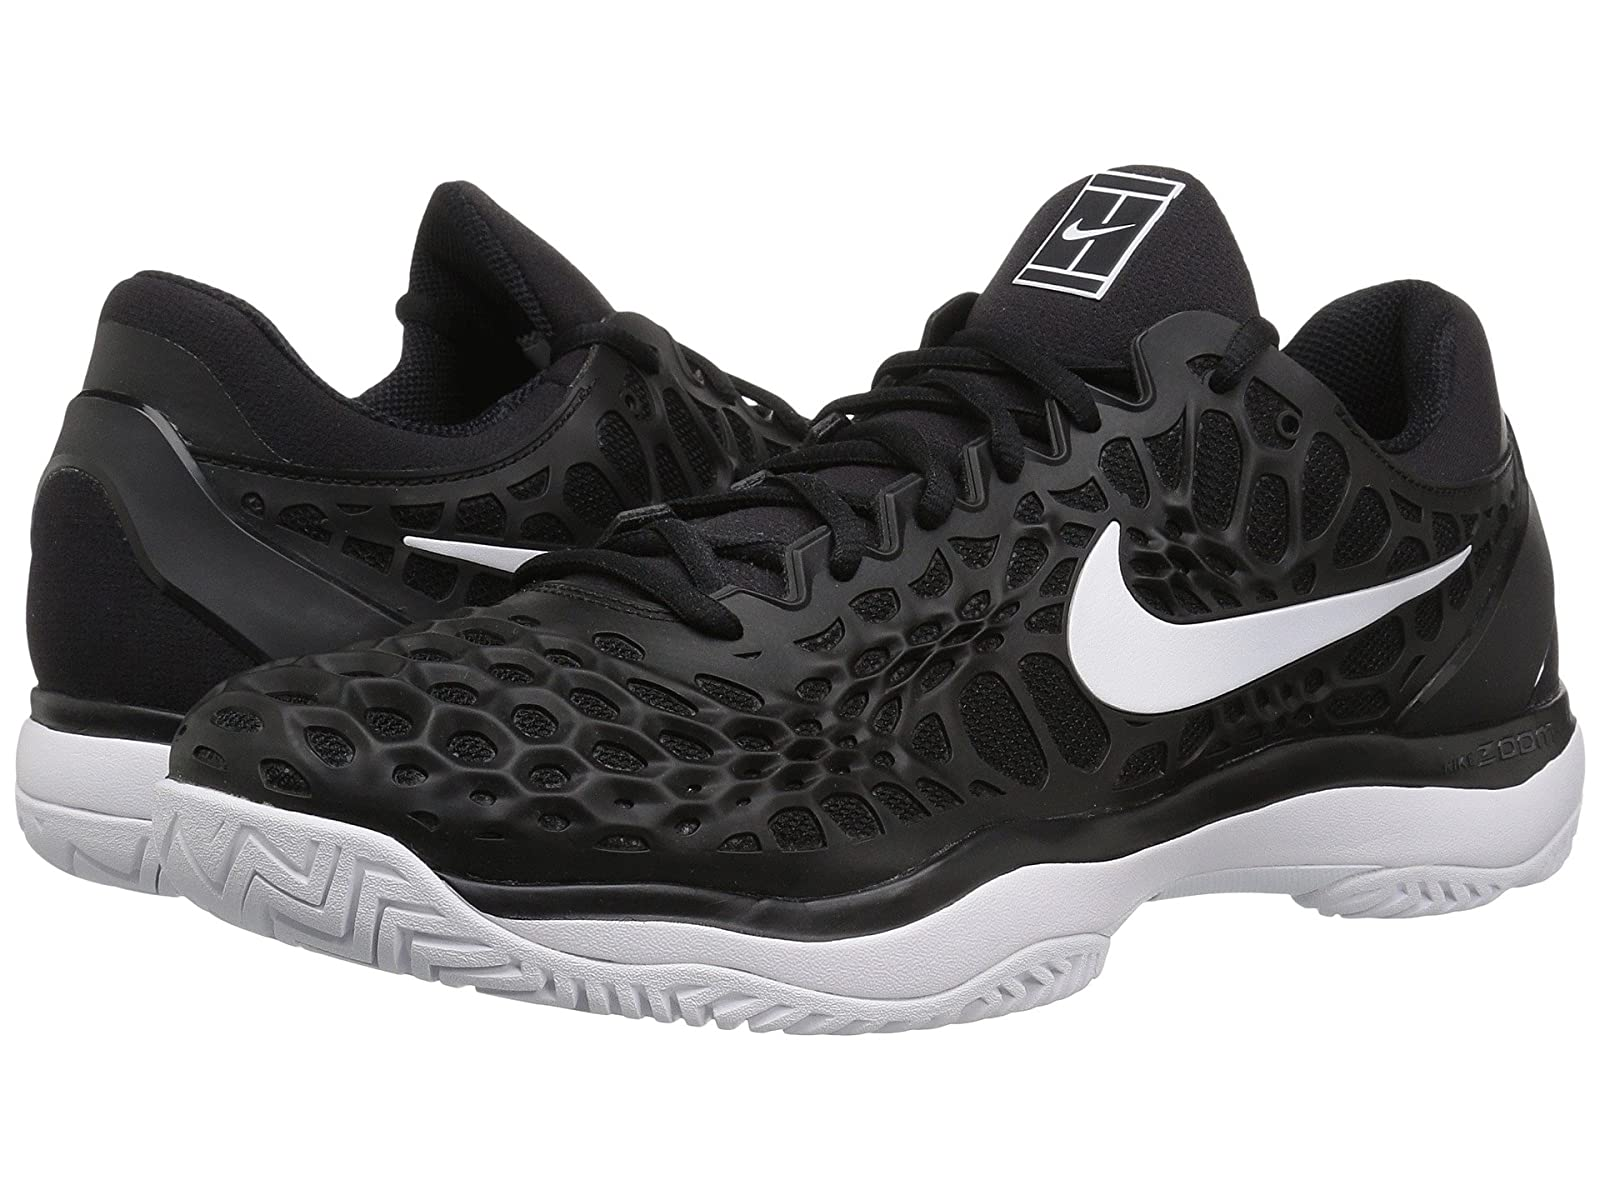 Nike Zoom Cage 3 HCAtmospheric grades have affordable shoes